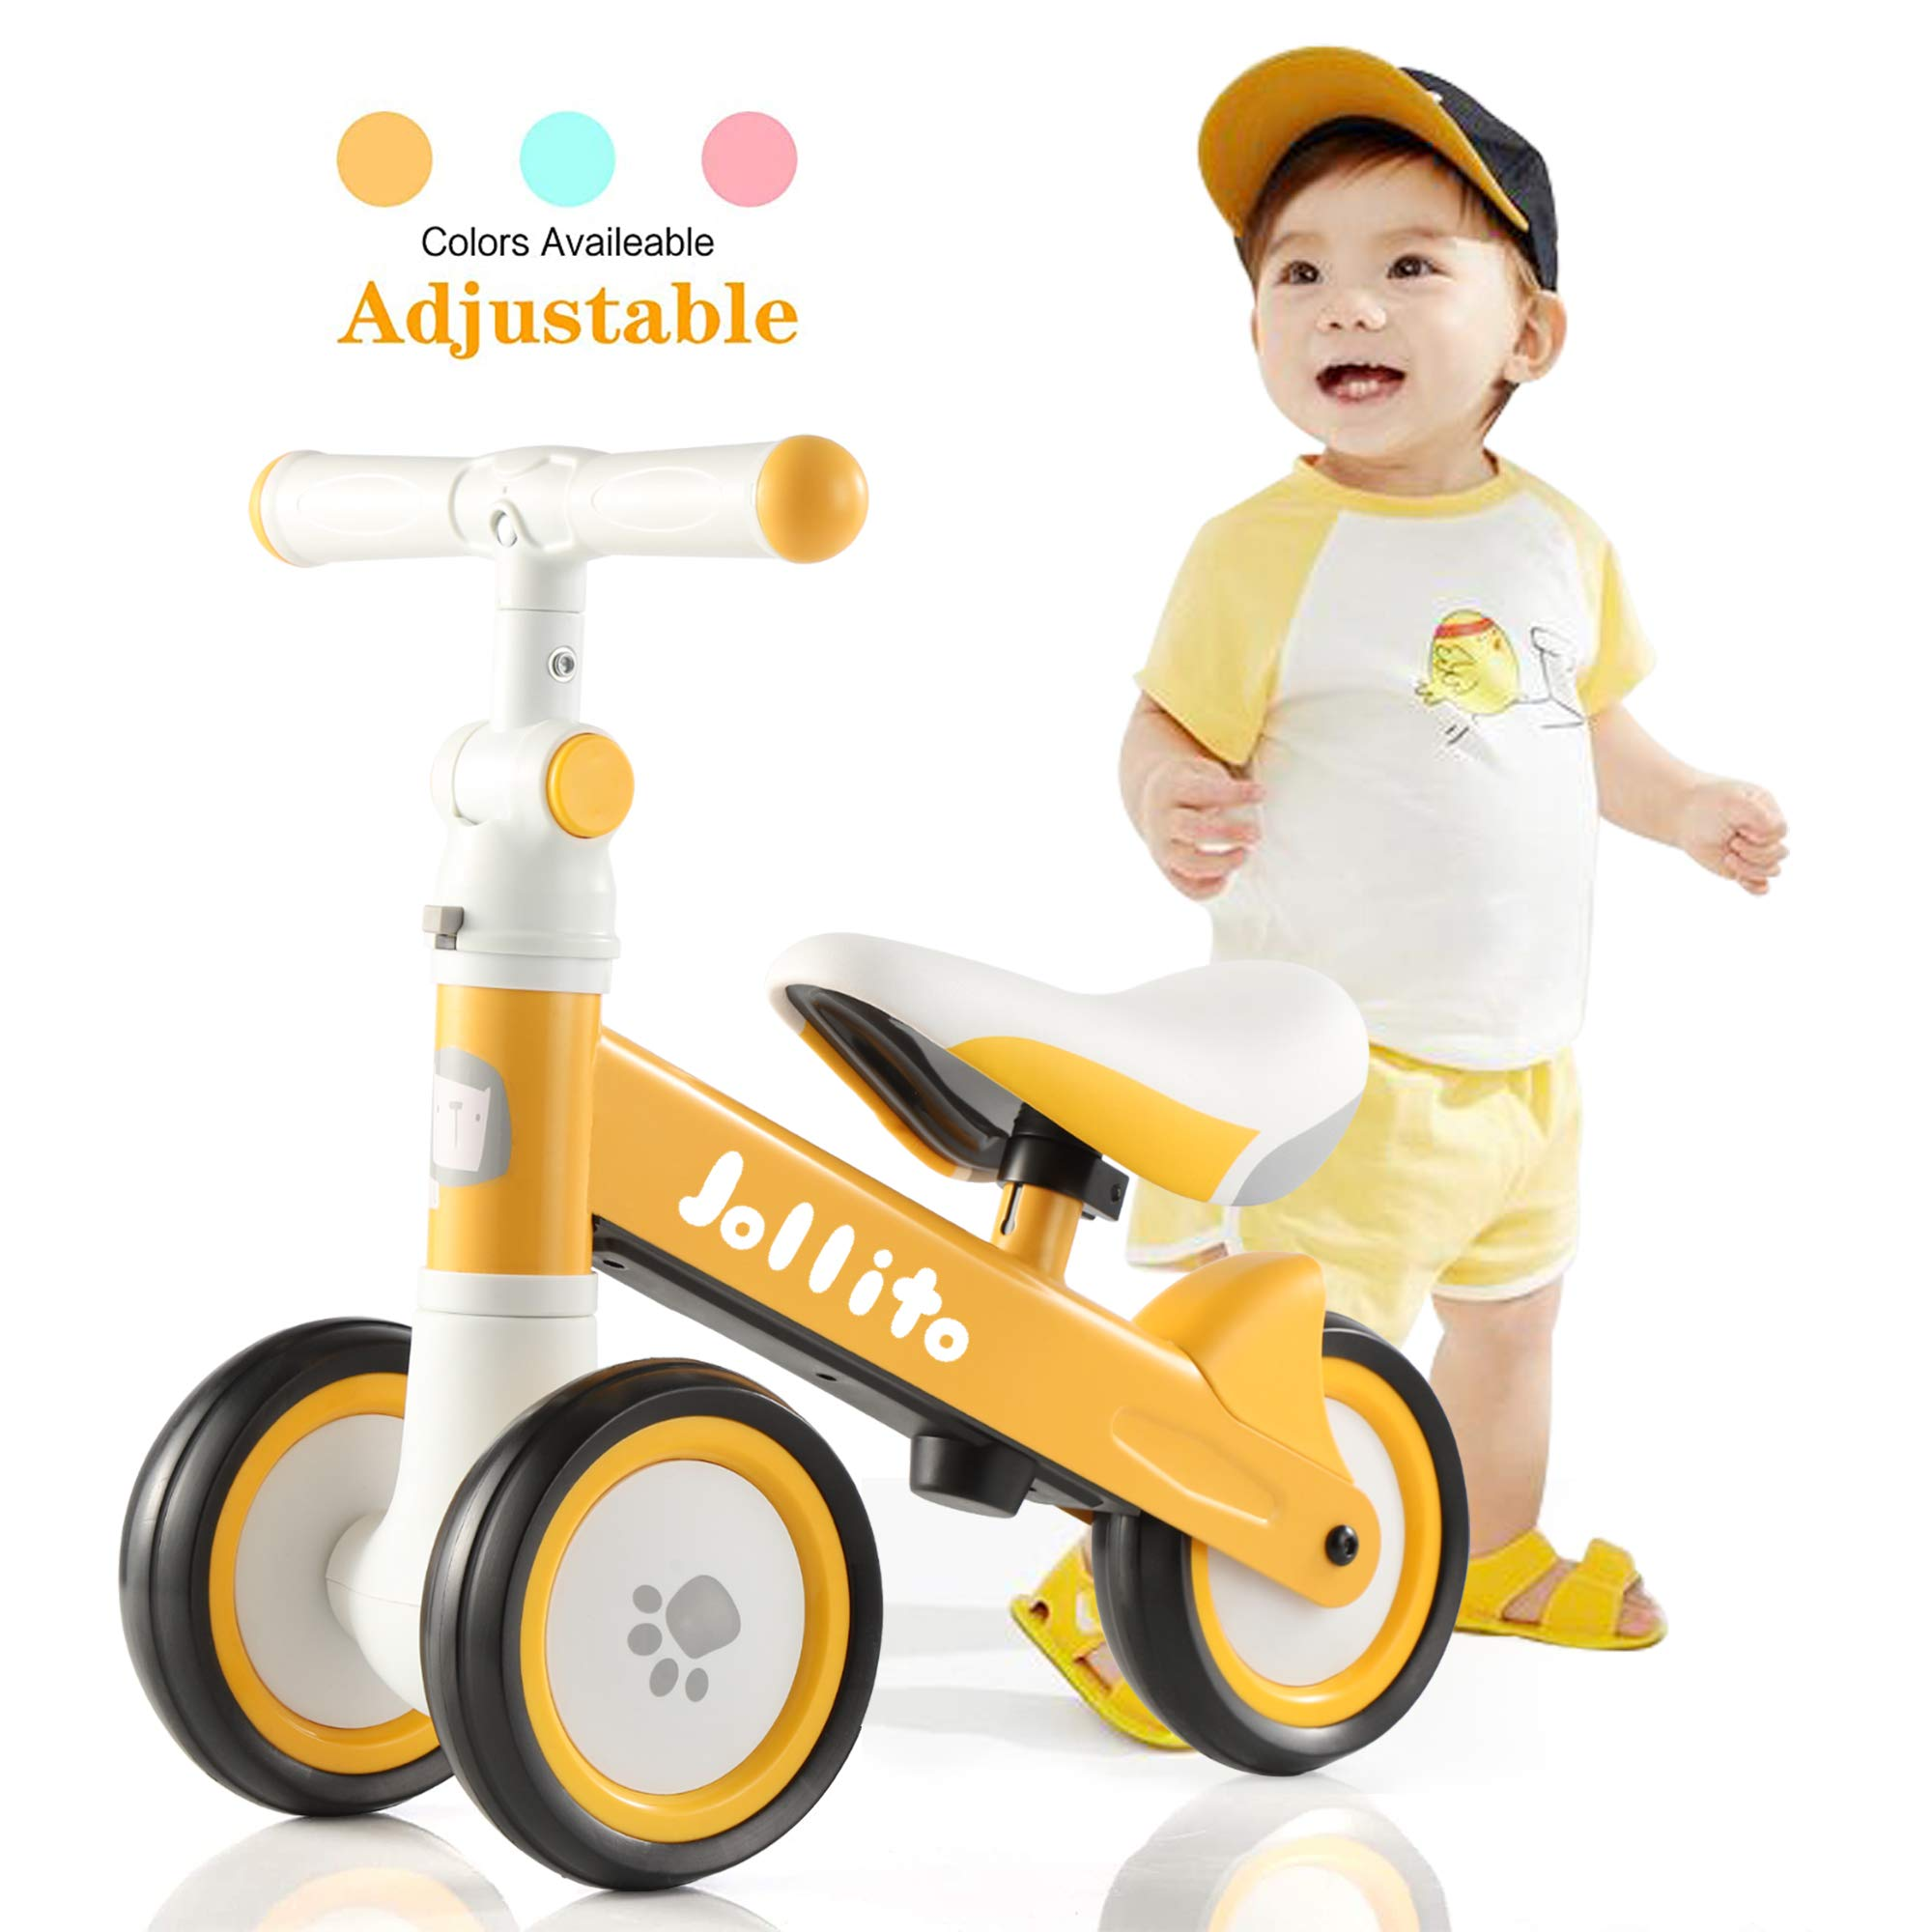 Baby Balance Bike for 10-24 Months-Adjustable Baby Bike,Sturdy Balance Bike for 1 Year Old Boy Girl, Best First Birthday Gifts, Safe Riding Toys for 1 Year Old Girl Boy Toddler Baby Bicycle